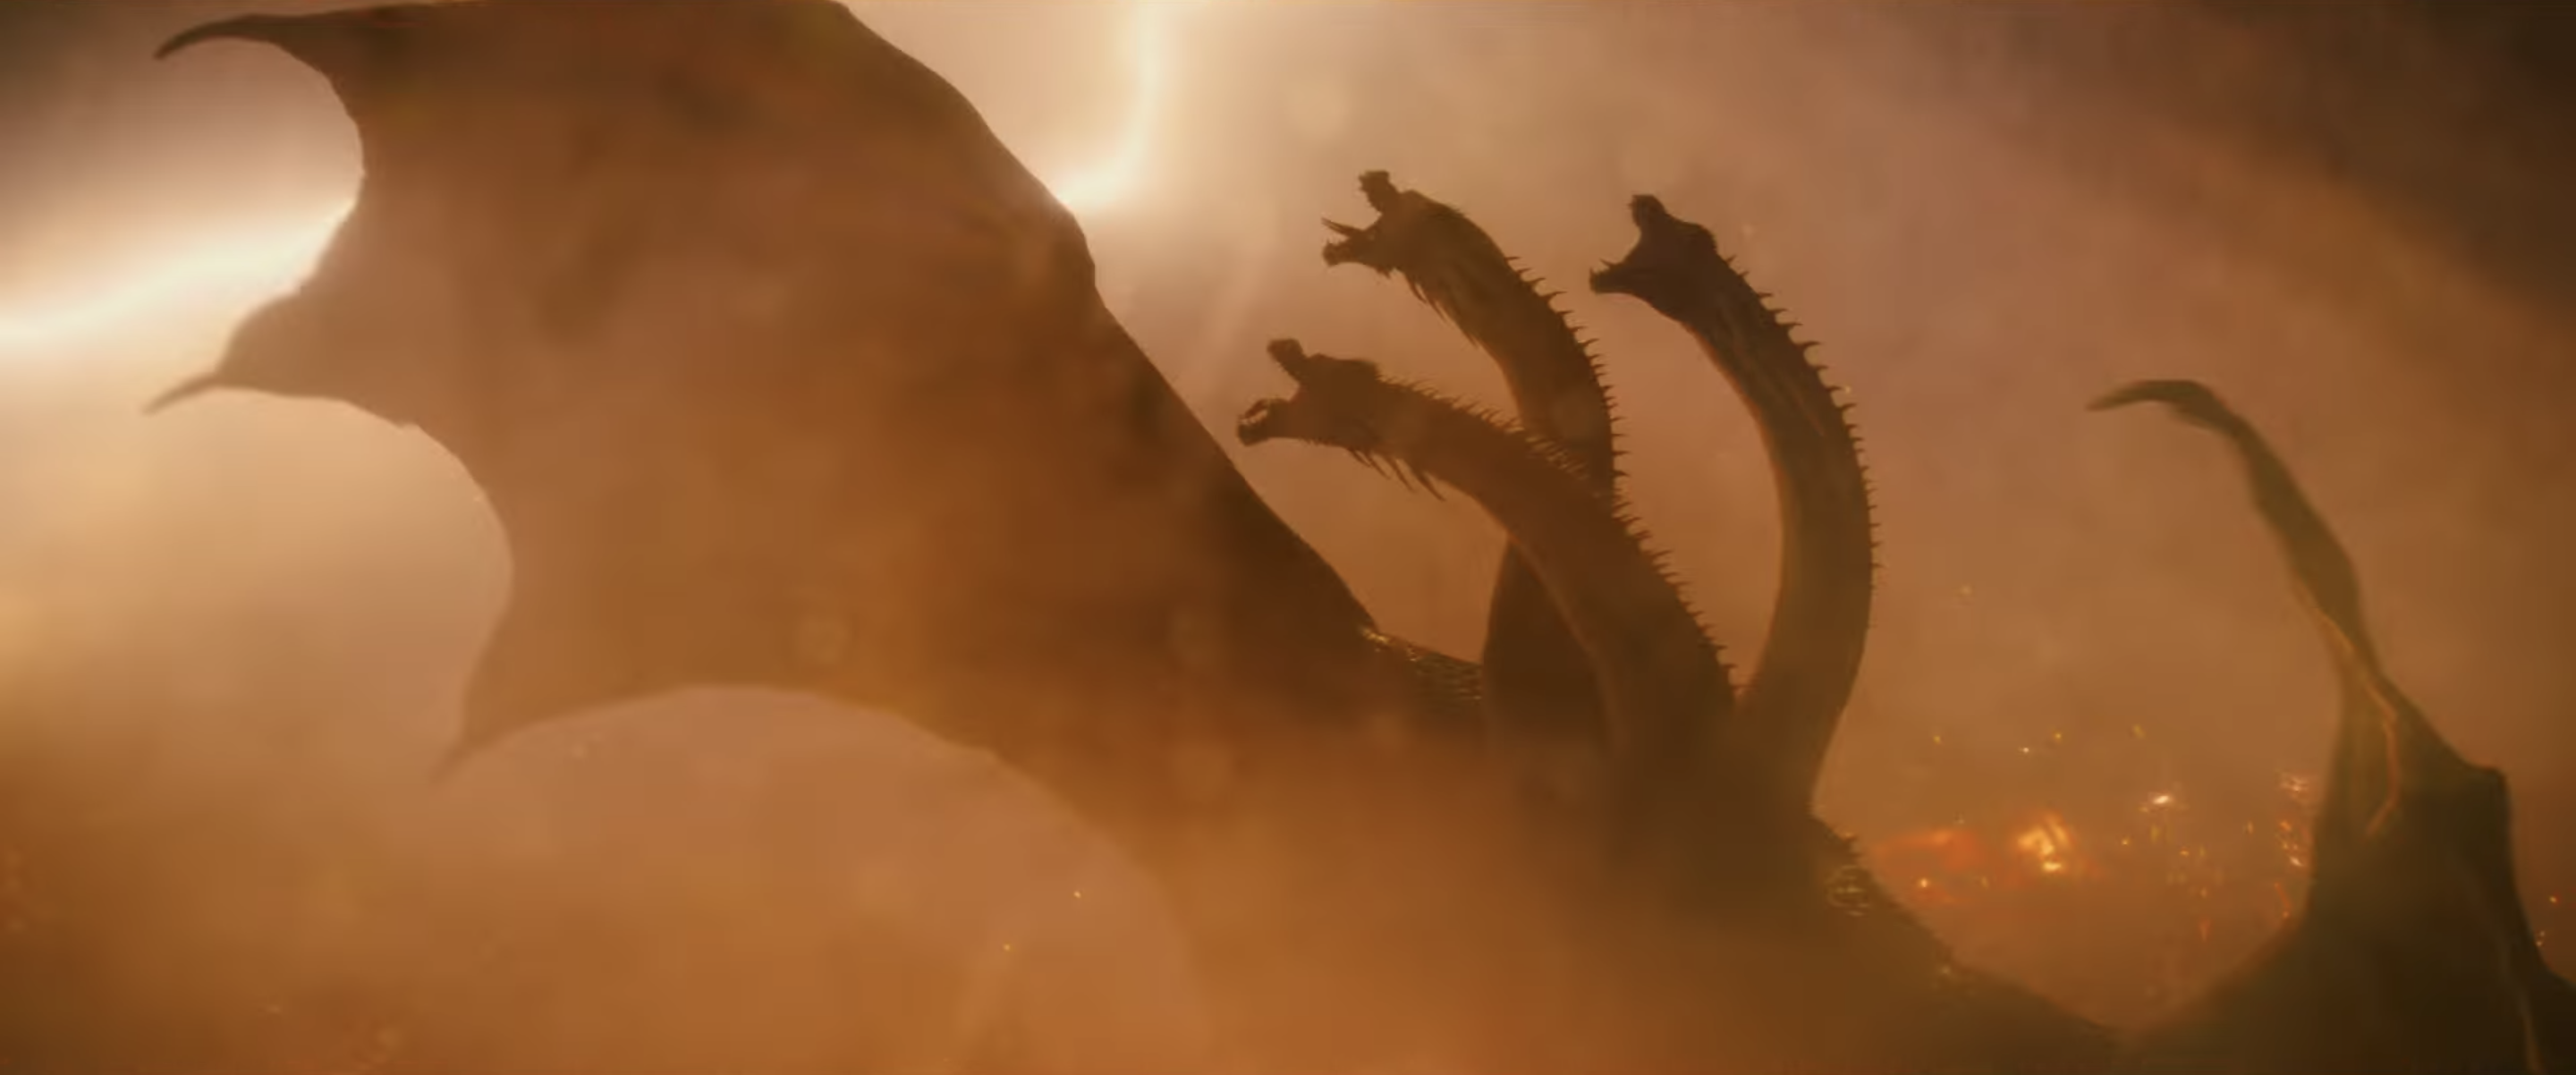 The new King of the Monsters trailer is for everyone who needed more Godzilla in Godzilla